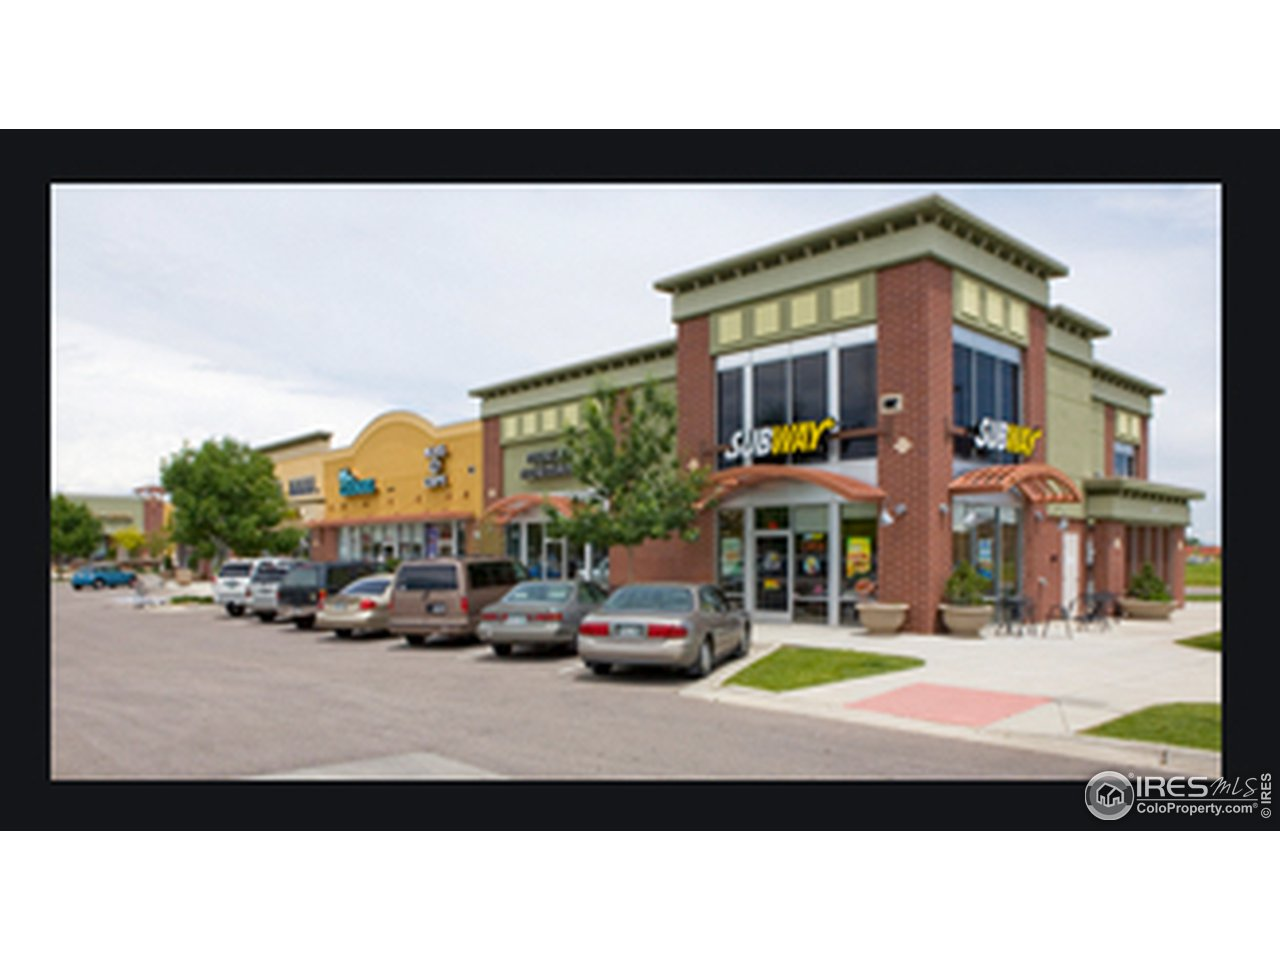 Shopping center literally steps away from unit including a grocery store!